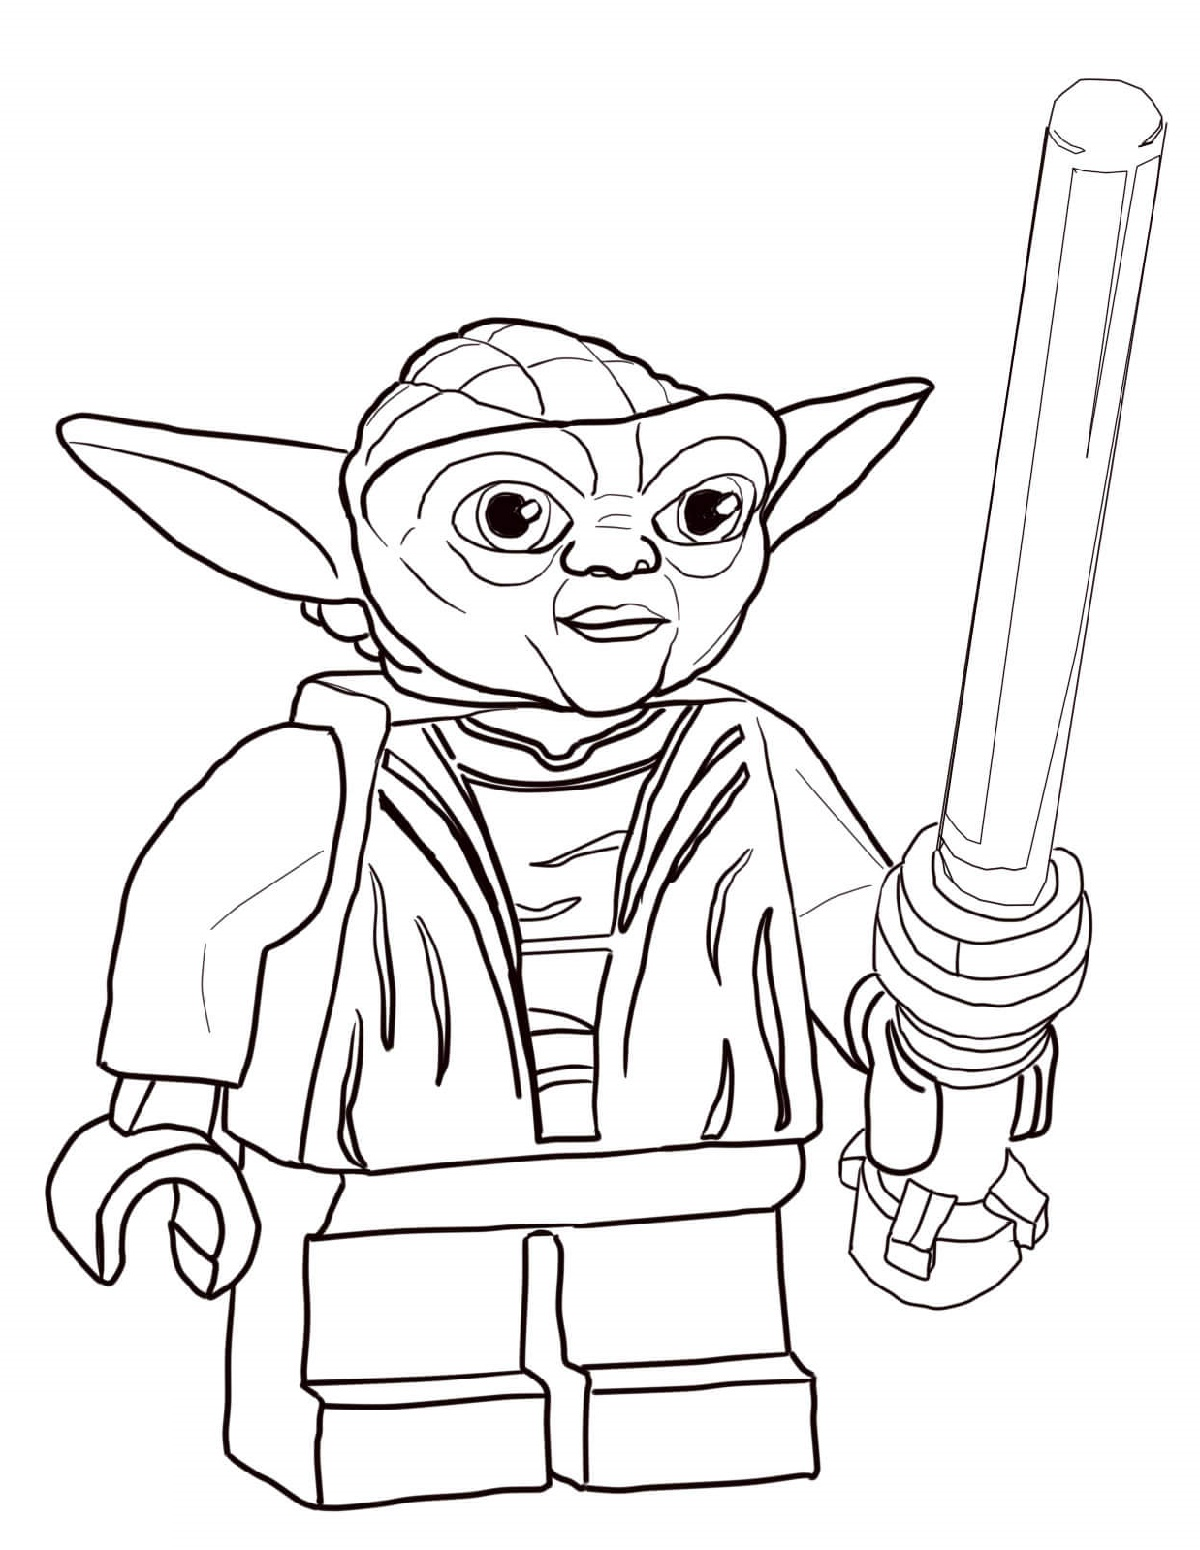 Yoda Coloring Pages Lego